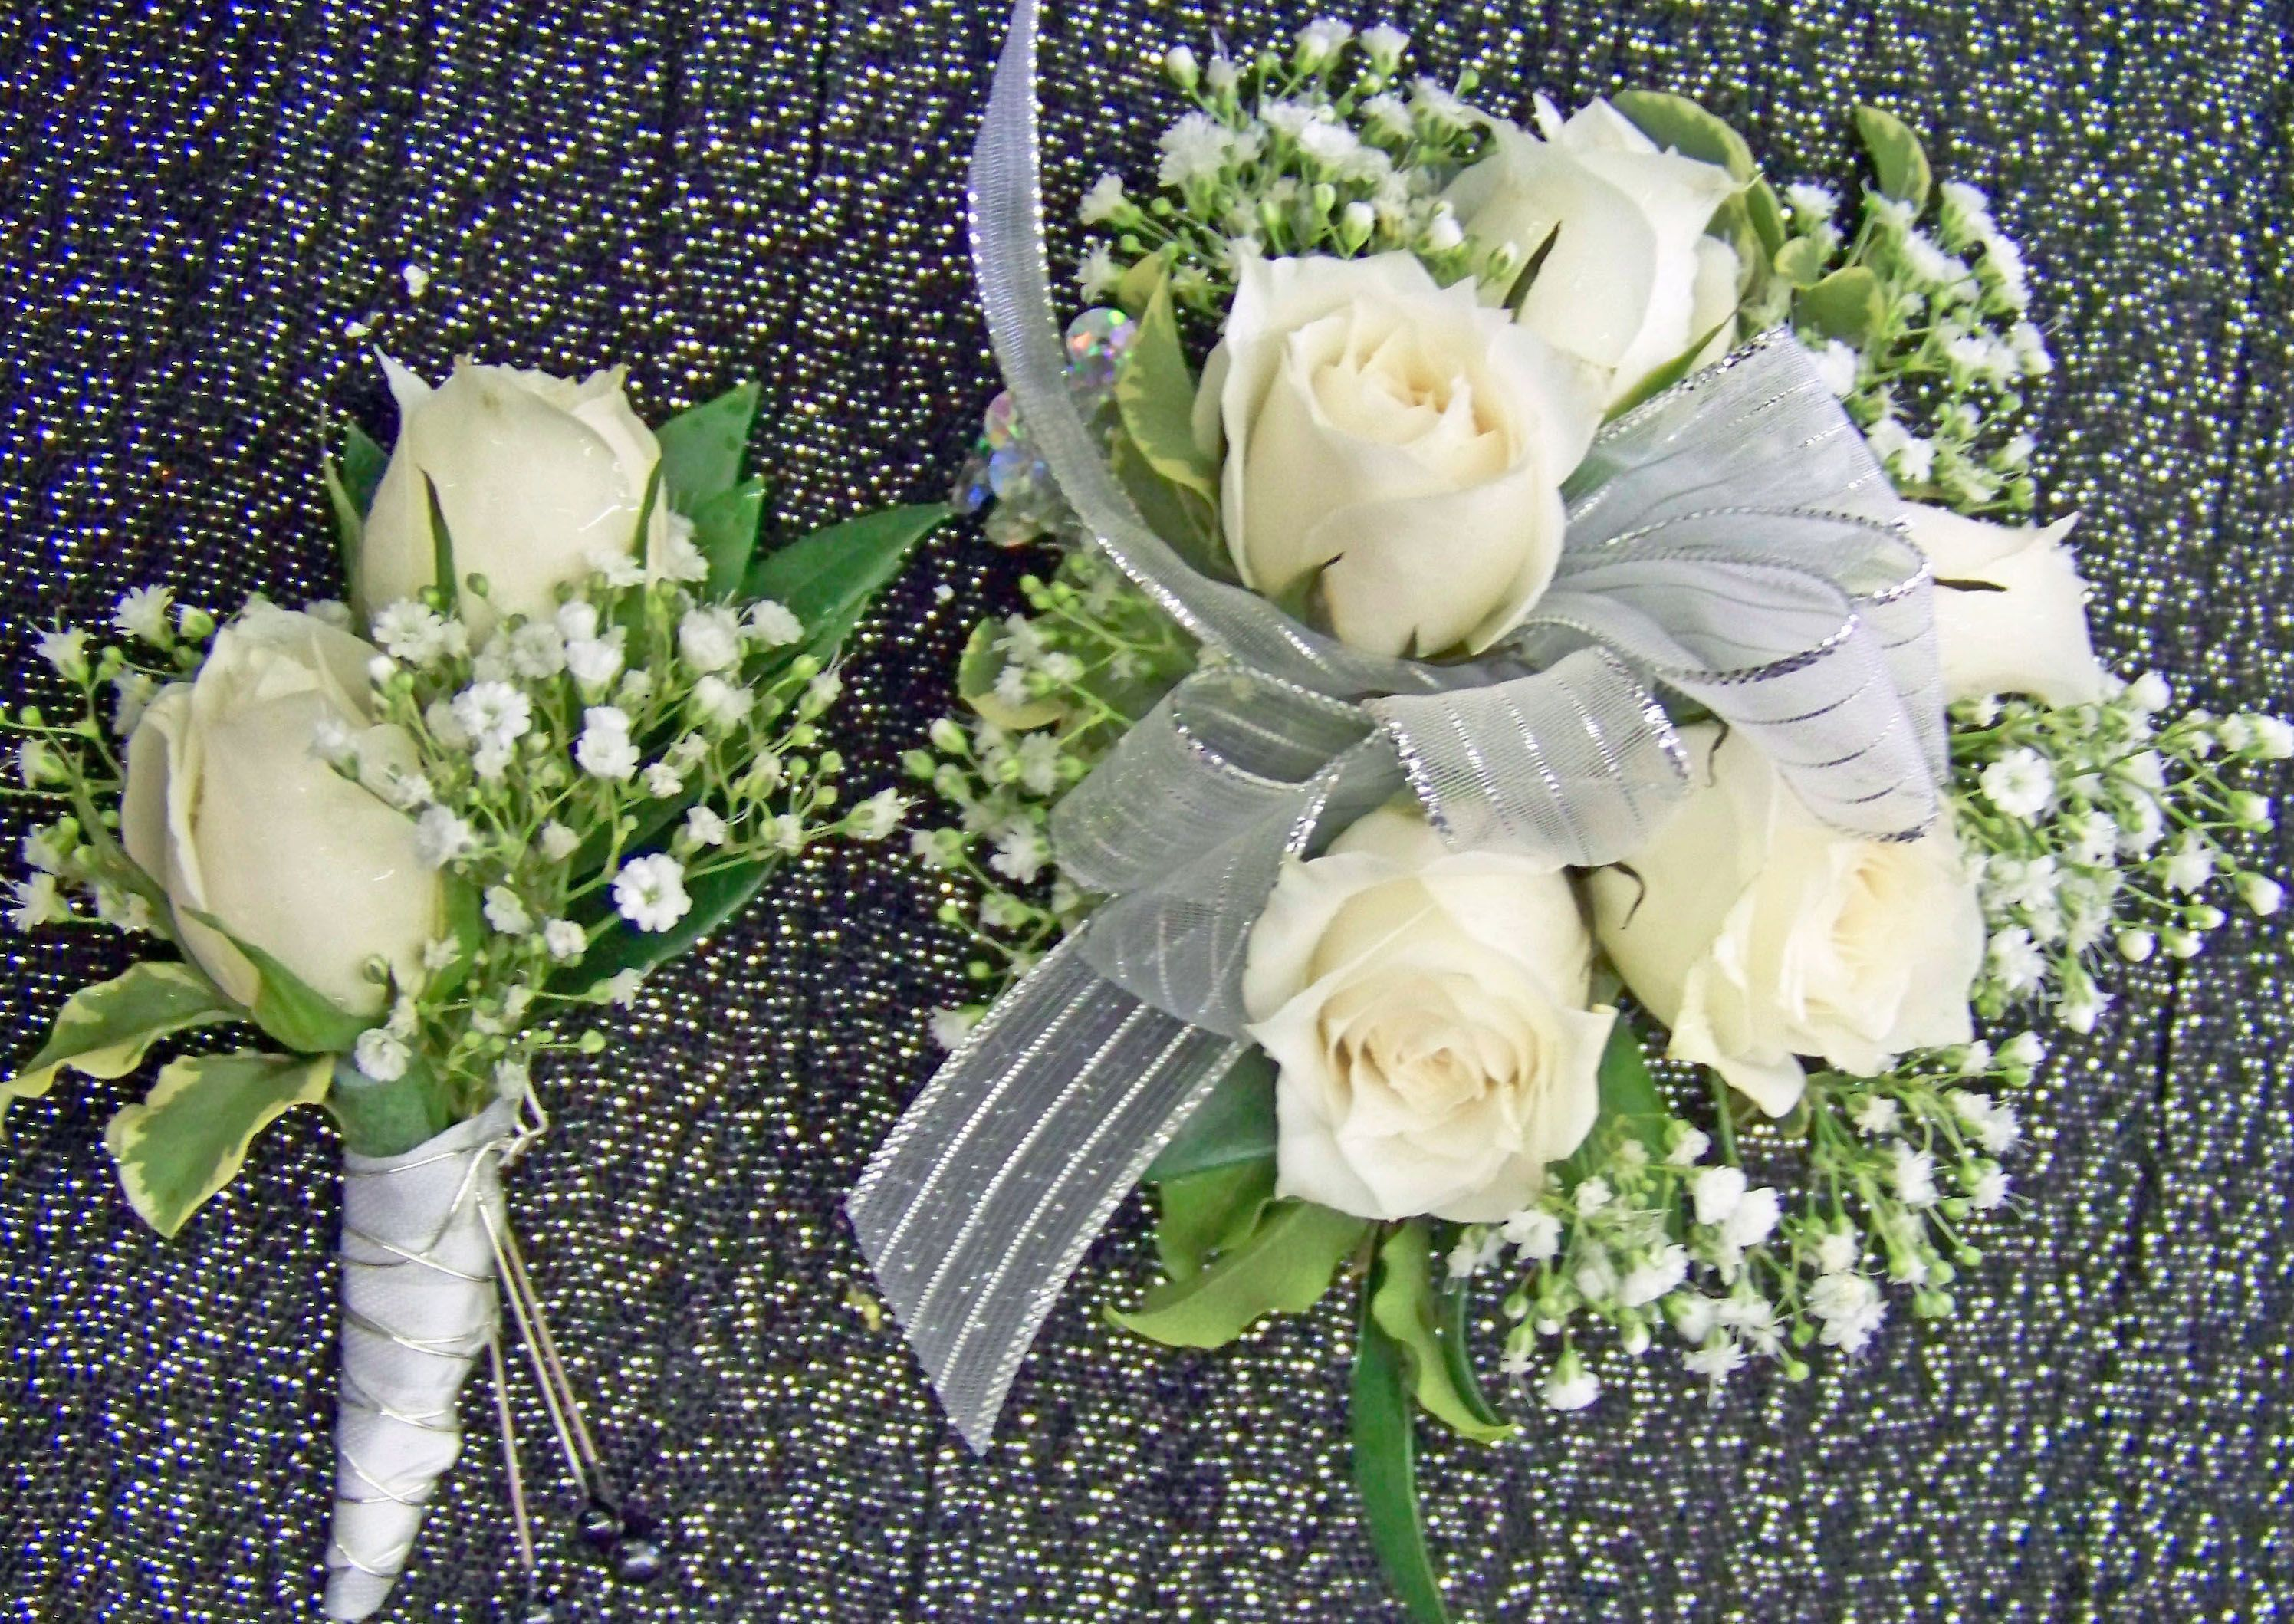 Wrist Corsage Of White Spray Roses Babies Breath With Matching